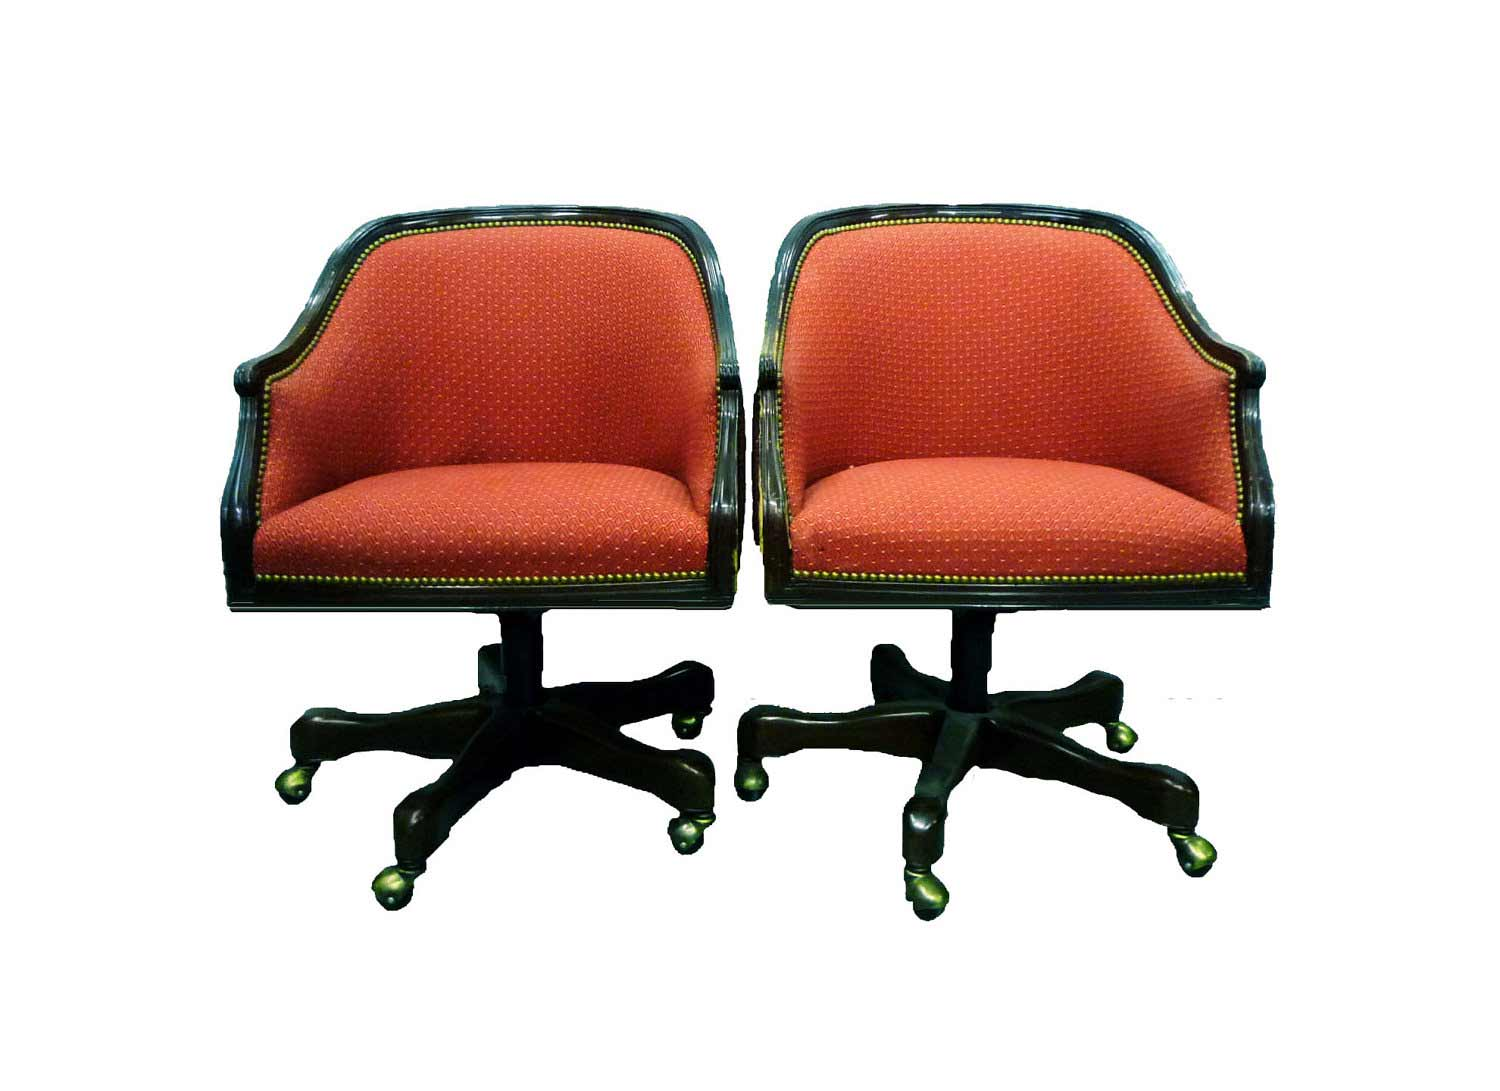 Councill Upholstered Vintage Rolling Chair Sets